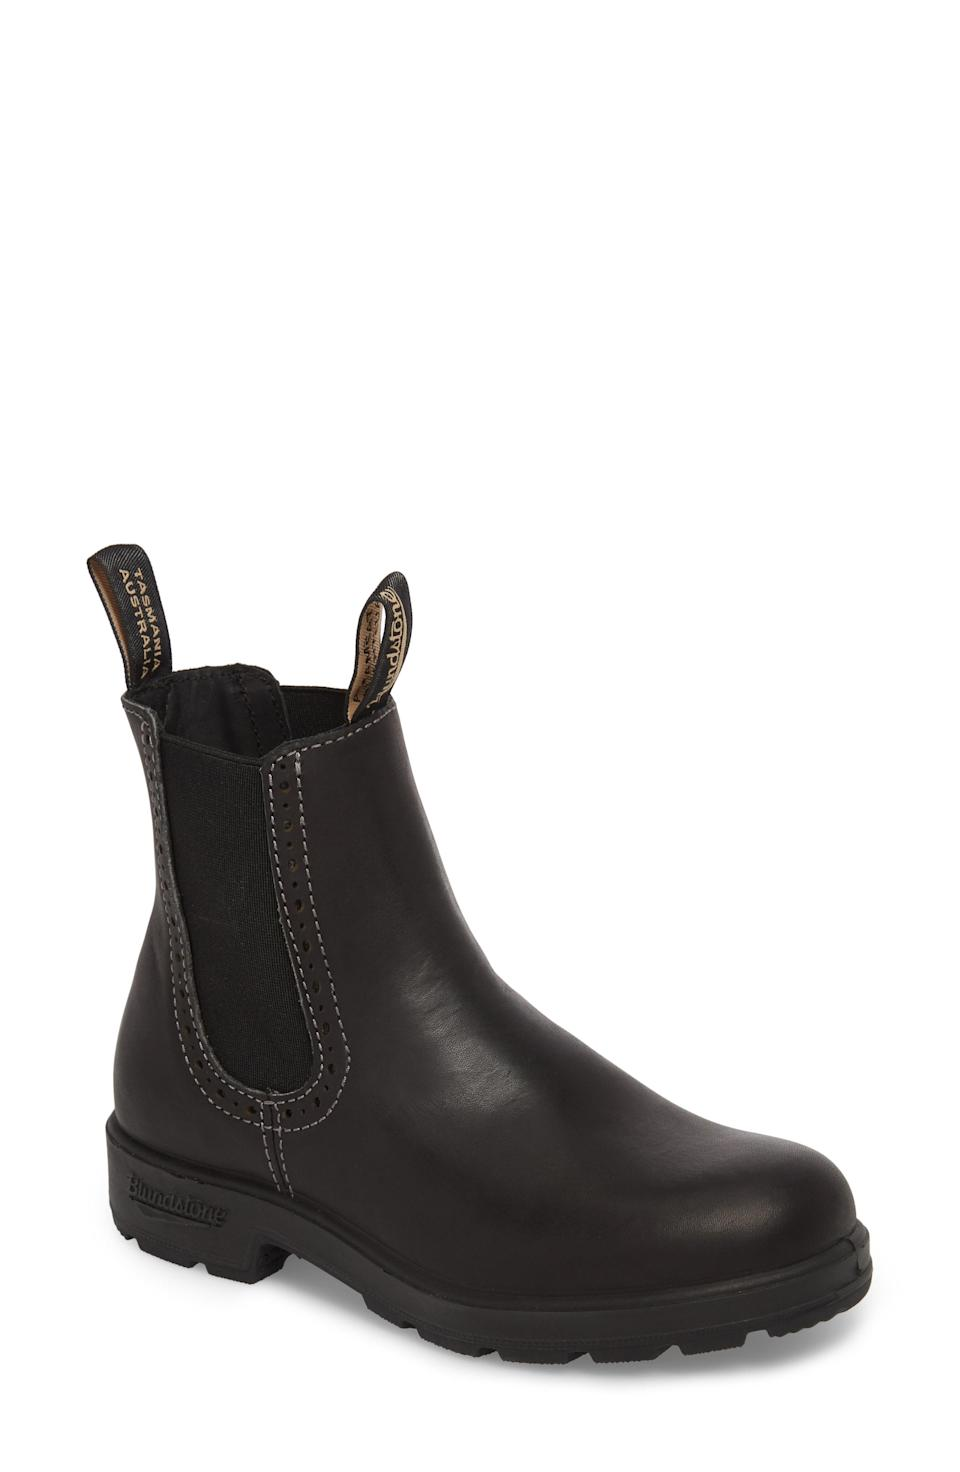 "<br><br><strong>Blundstone</strong> Original Series Water Resistant Chelsea Boot, $, available at <a href=""https://go.skimresources.com/?id=30283X879131&url=https%3A%2F%2Fshop.nordstrom.com%2Fs%2Fblundstone-footwear-original-series-water-resistant-chelsea-boot-women%2F4466007%3F"" rel=""nofollow noopener"" target=""_blank"" data-ylk=""slk:Nordstrom"" class=""link rapid-noclick-resp"">Nordstrom</a><span class=""copyright"">Photo Courtesy of Nordstrom.</span>"